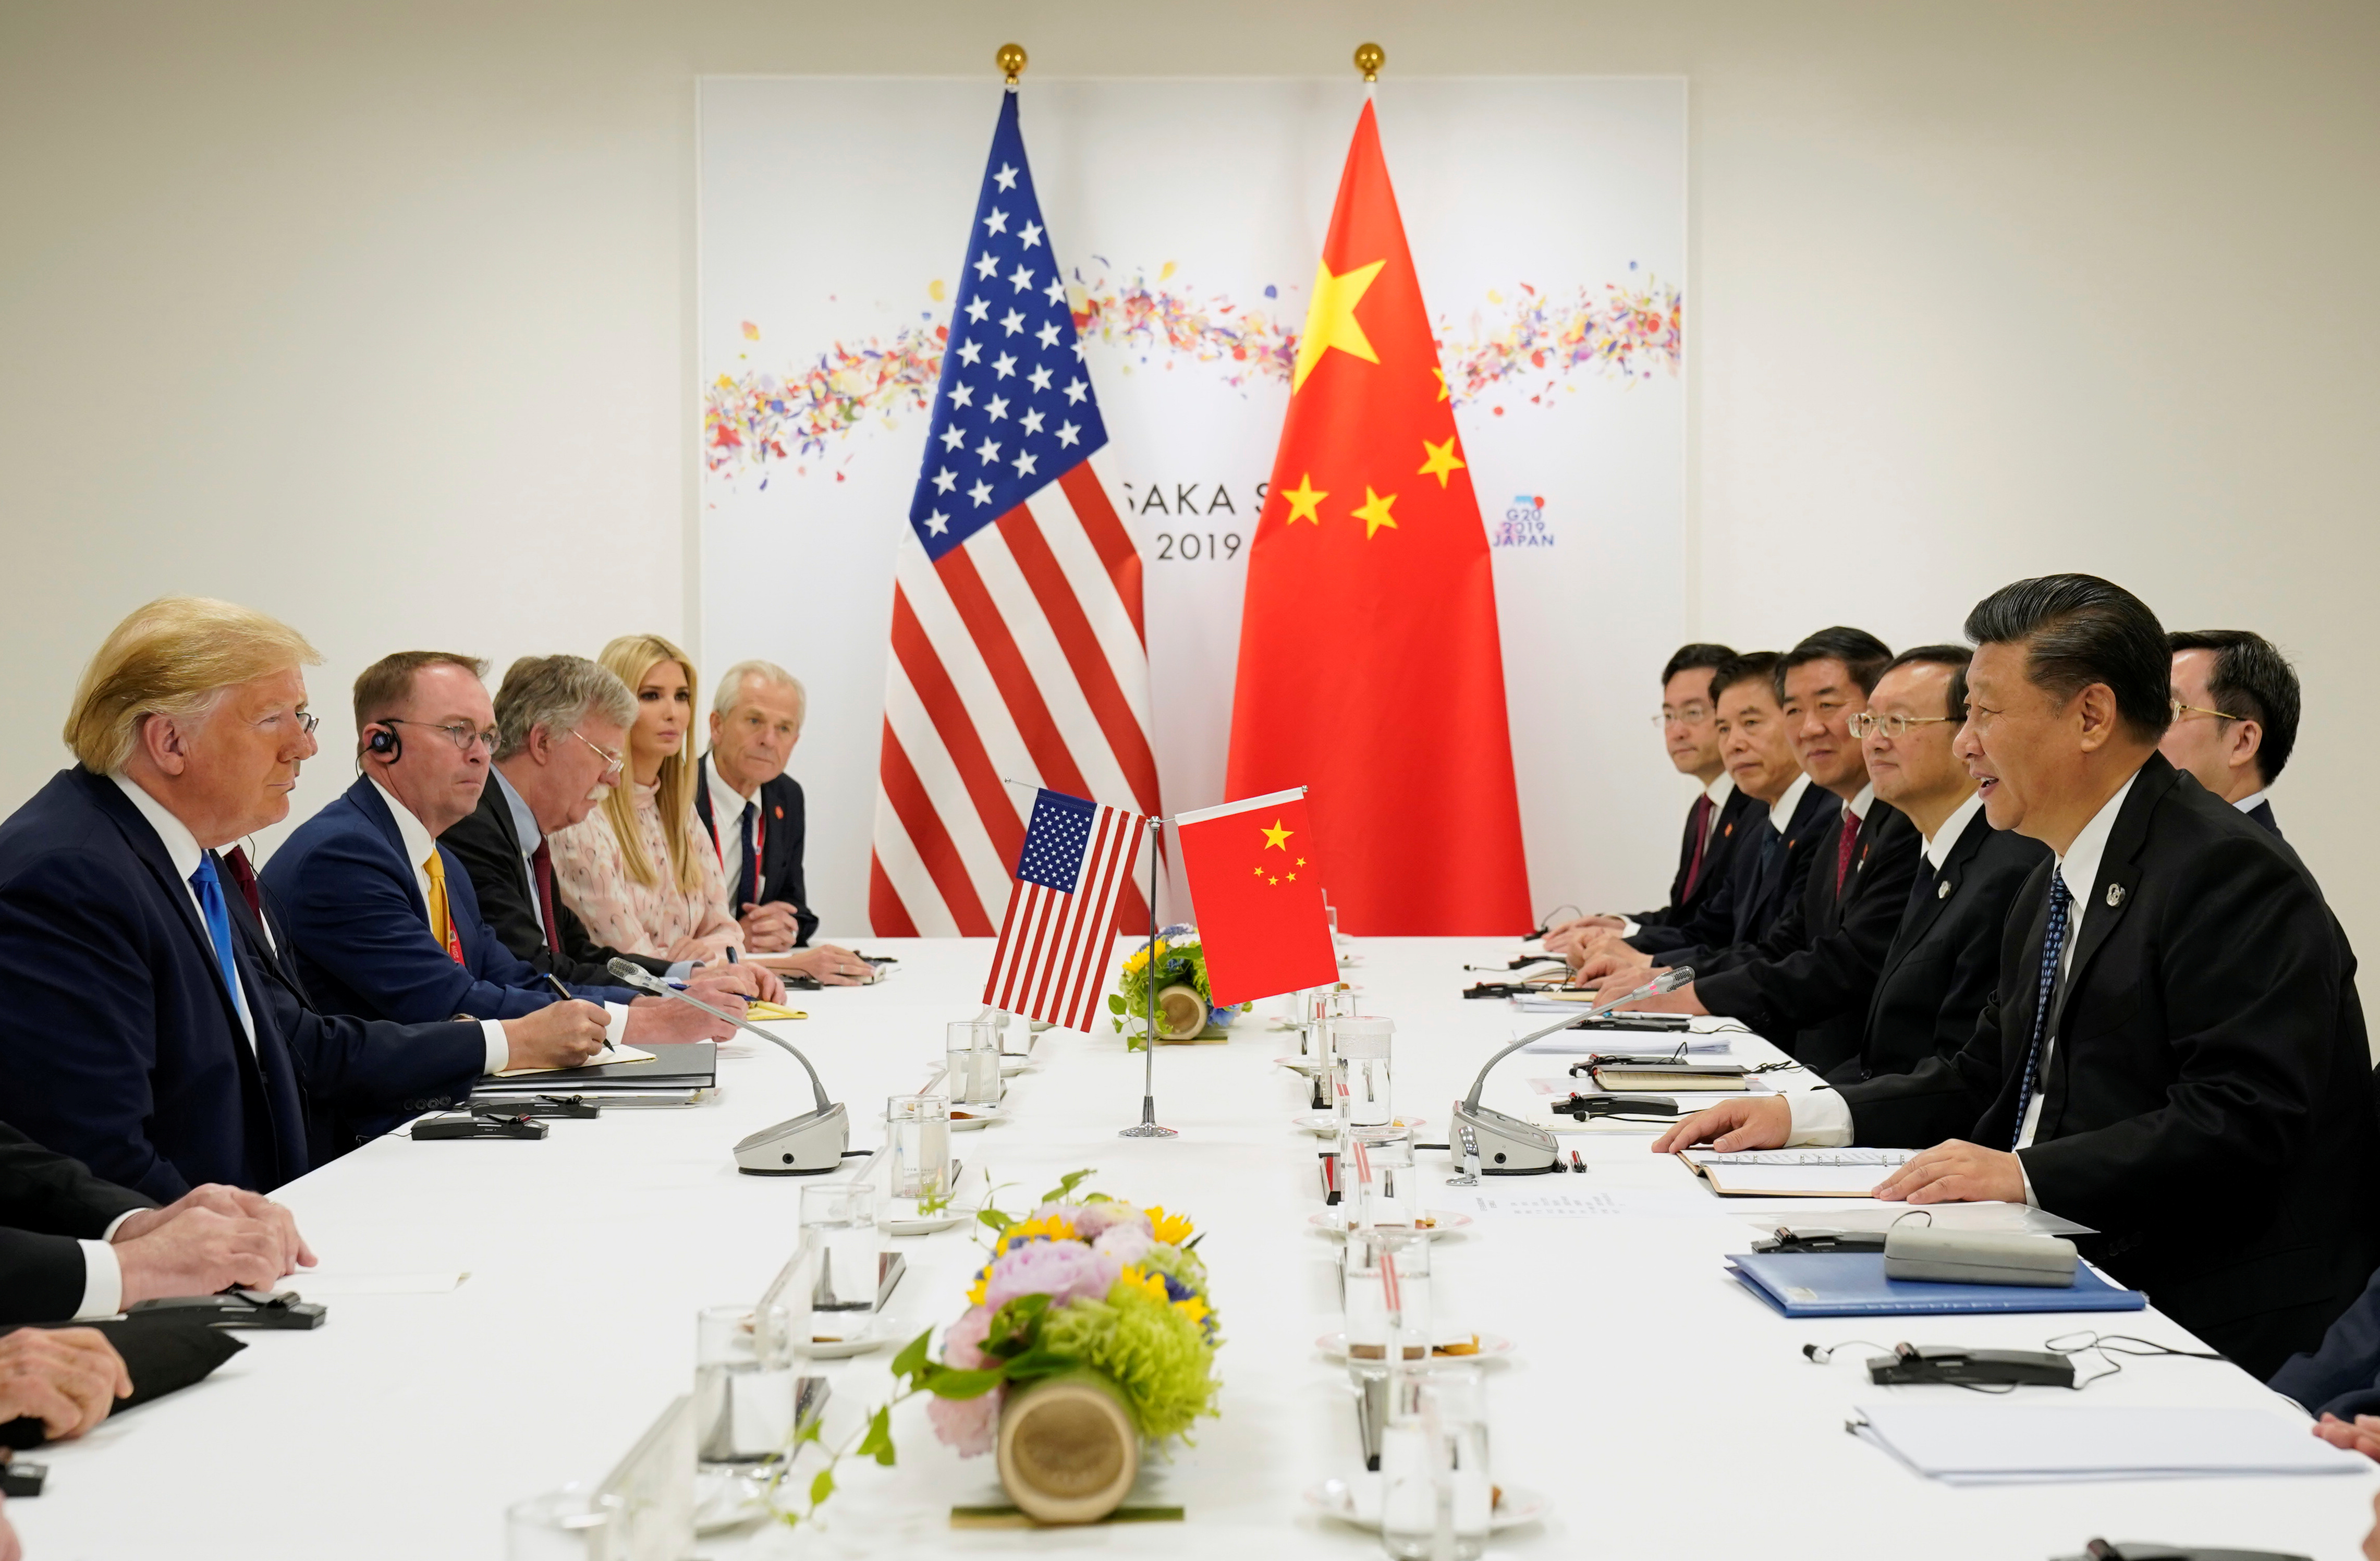 U.S. President Donald Trump attends a bilateral meeting with China's President Xi Jinping during the G-20 leaders summit in Osaka, Japan, June 29, 2019.